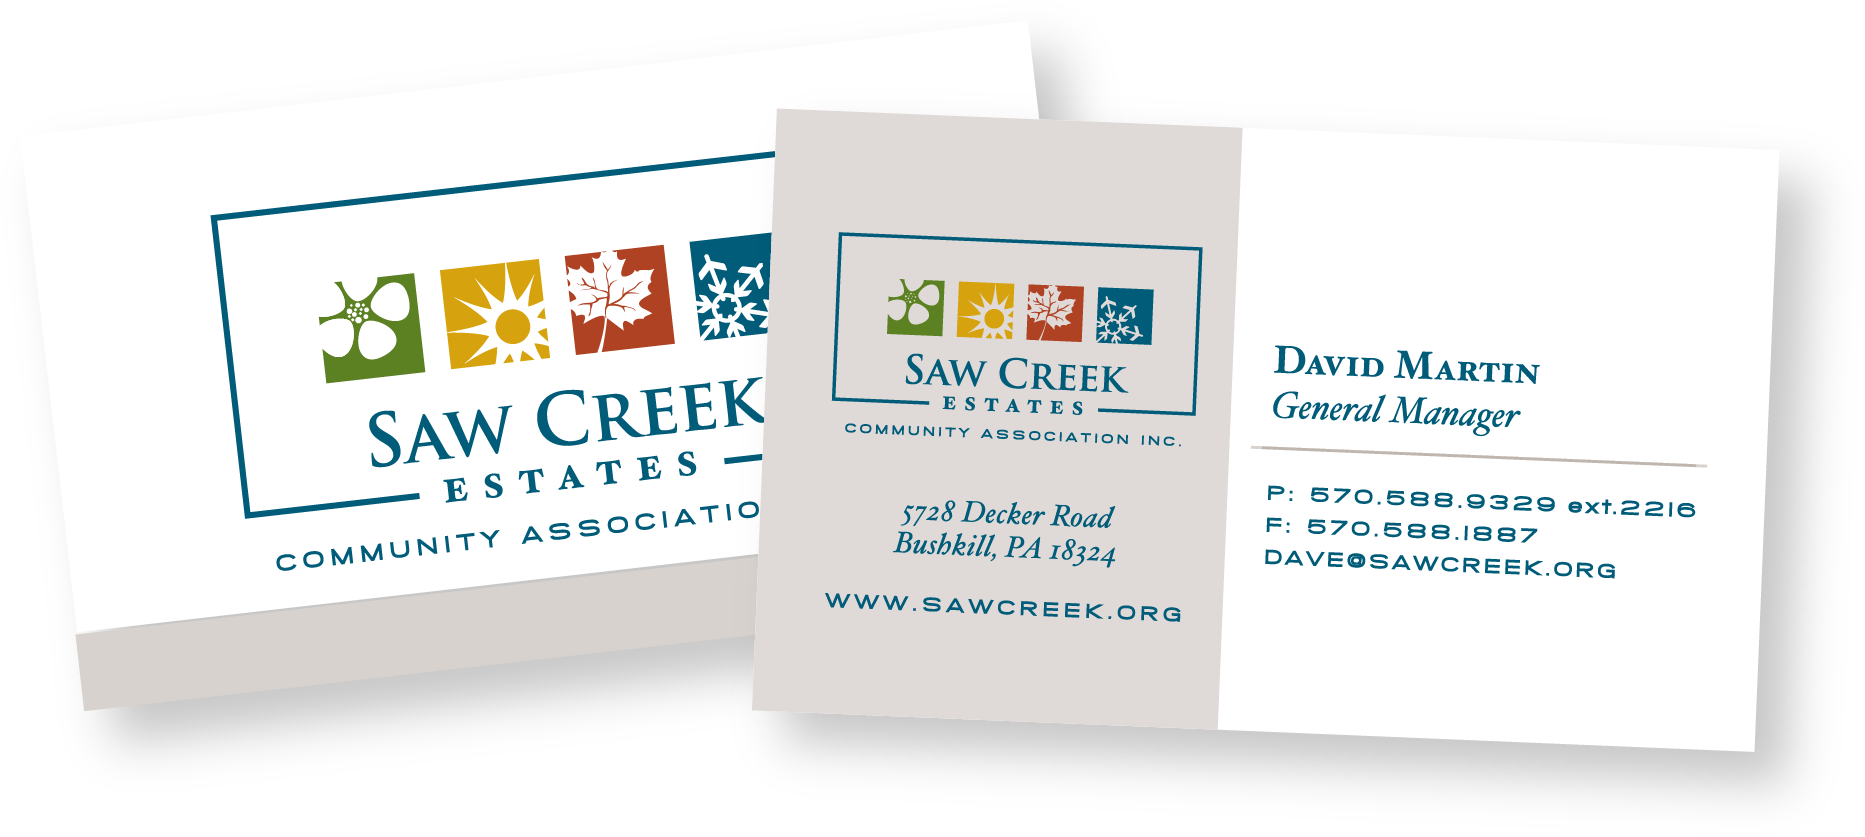 Saw Creek business cards